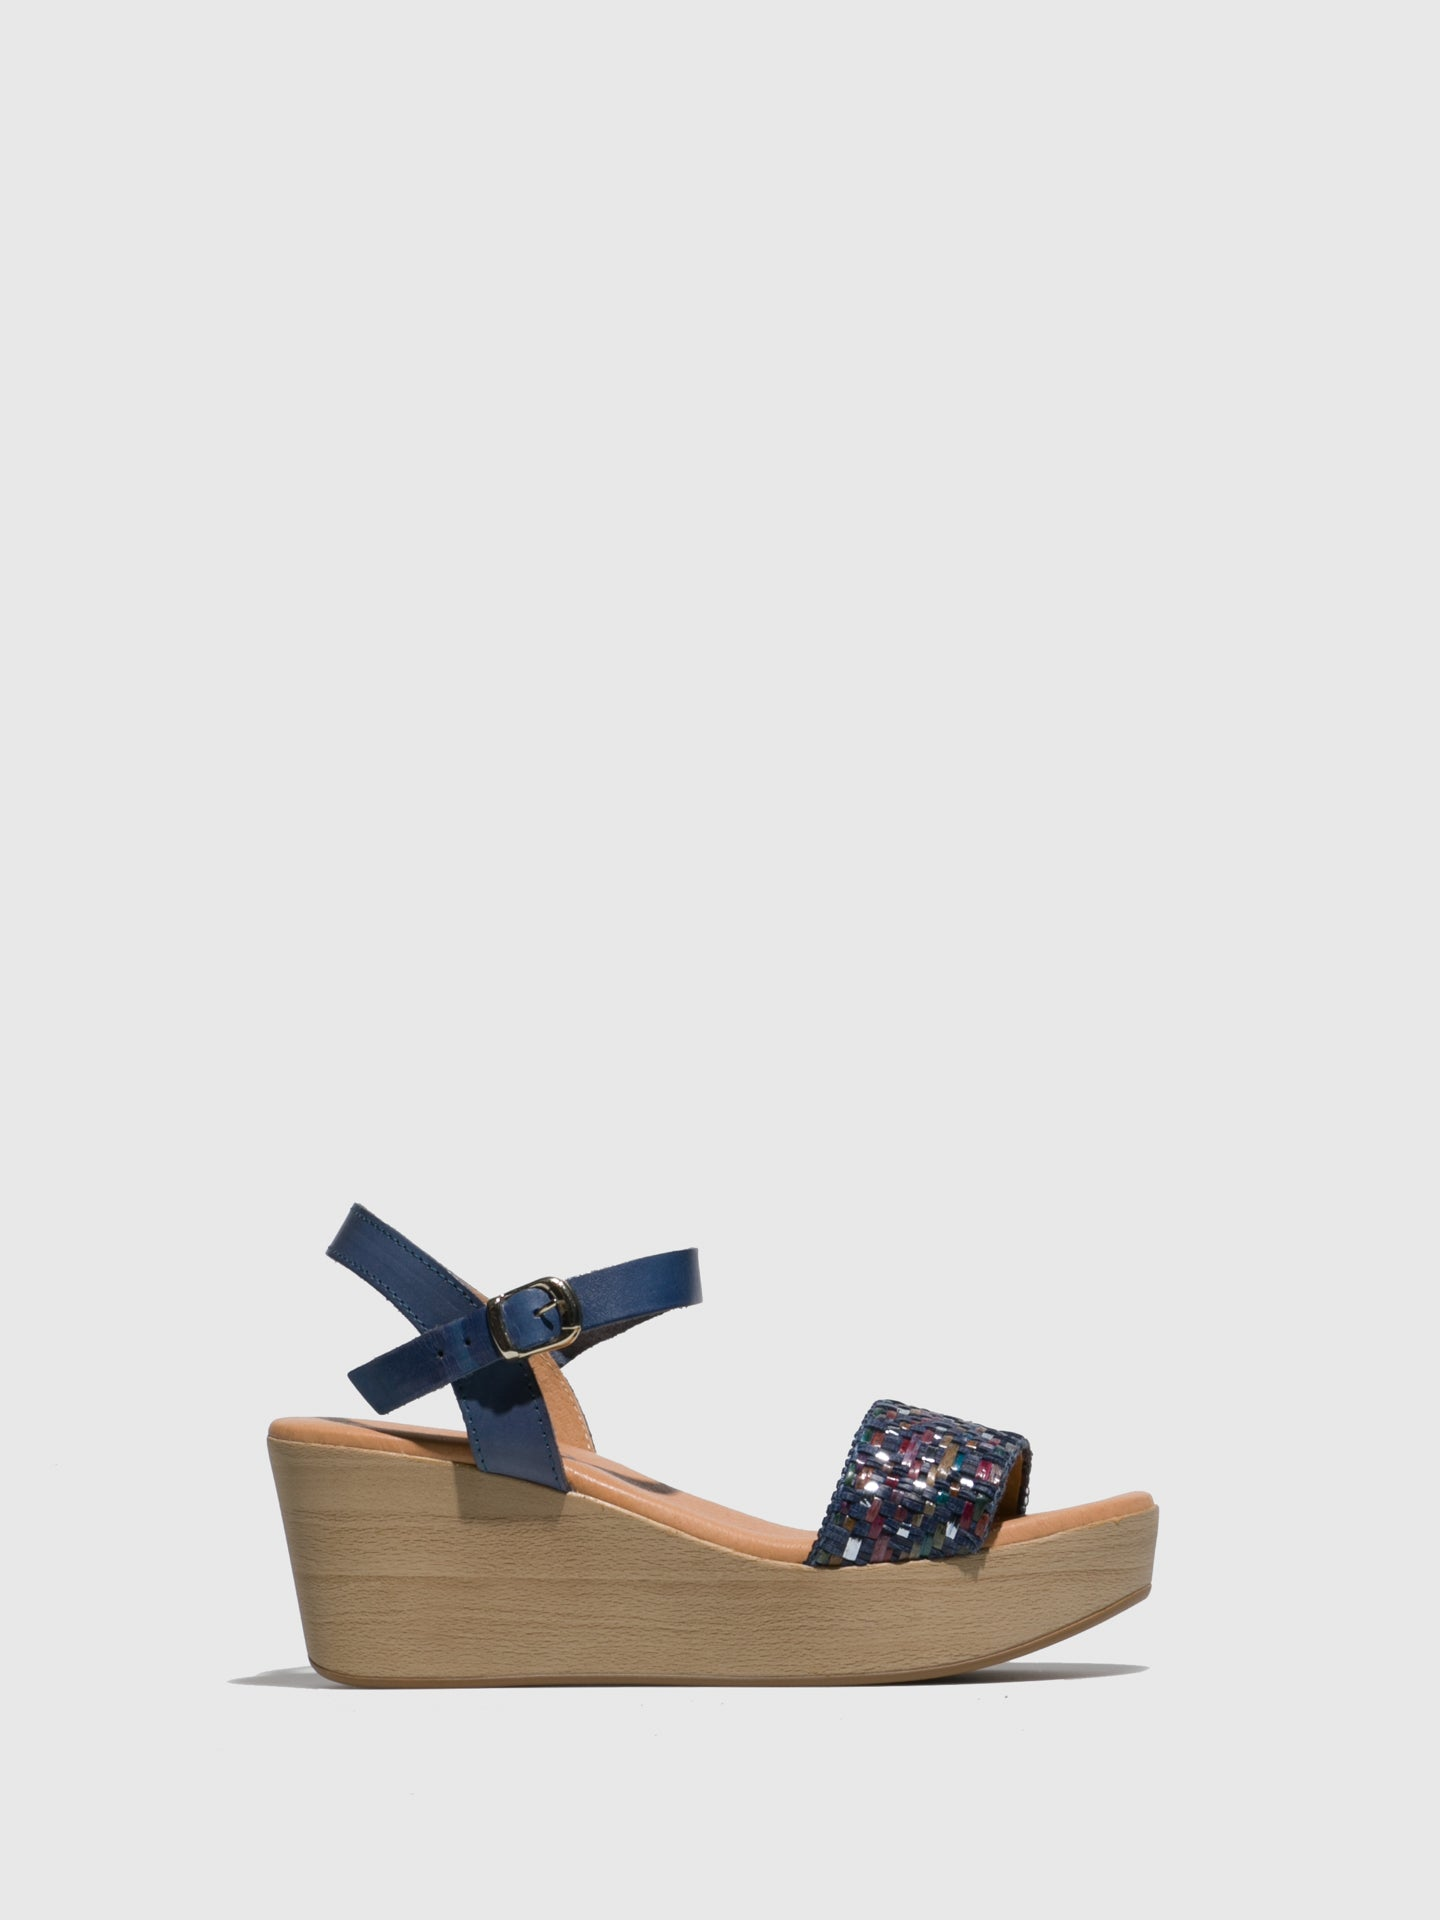 Sotoalto Blue Wedge Sandals